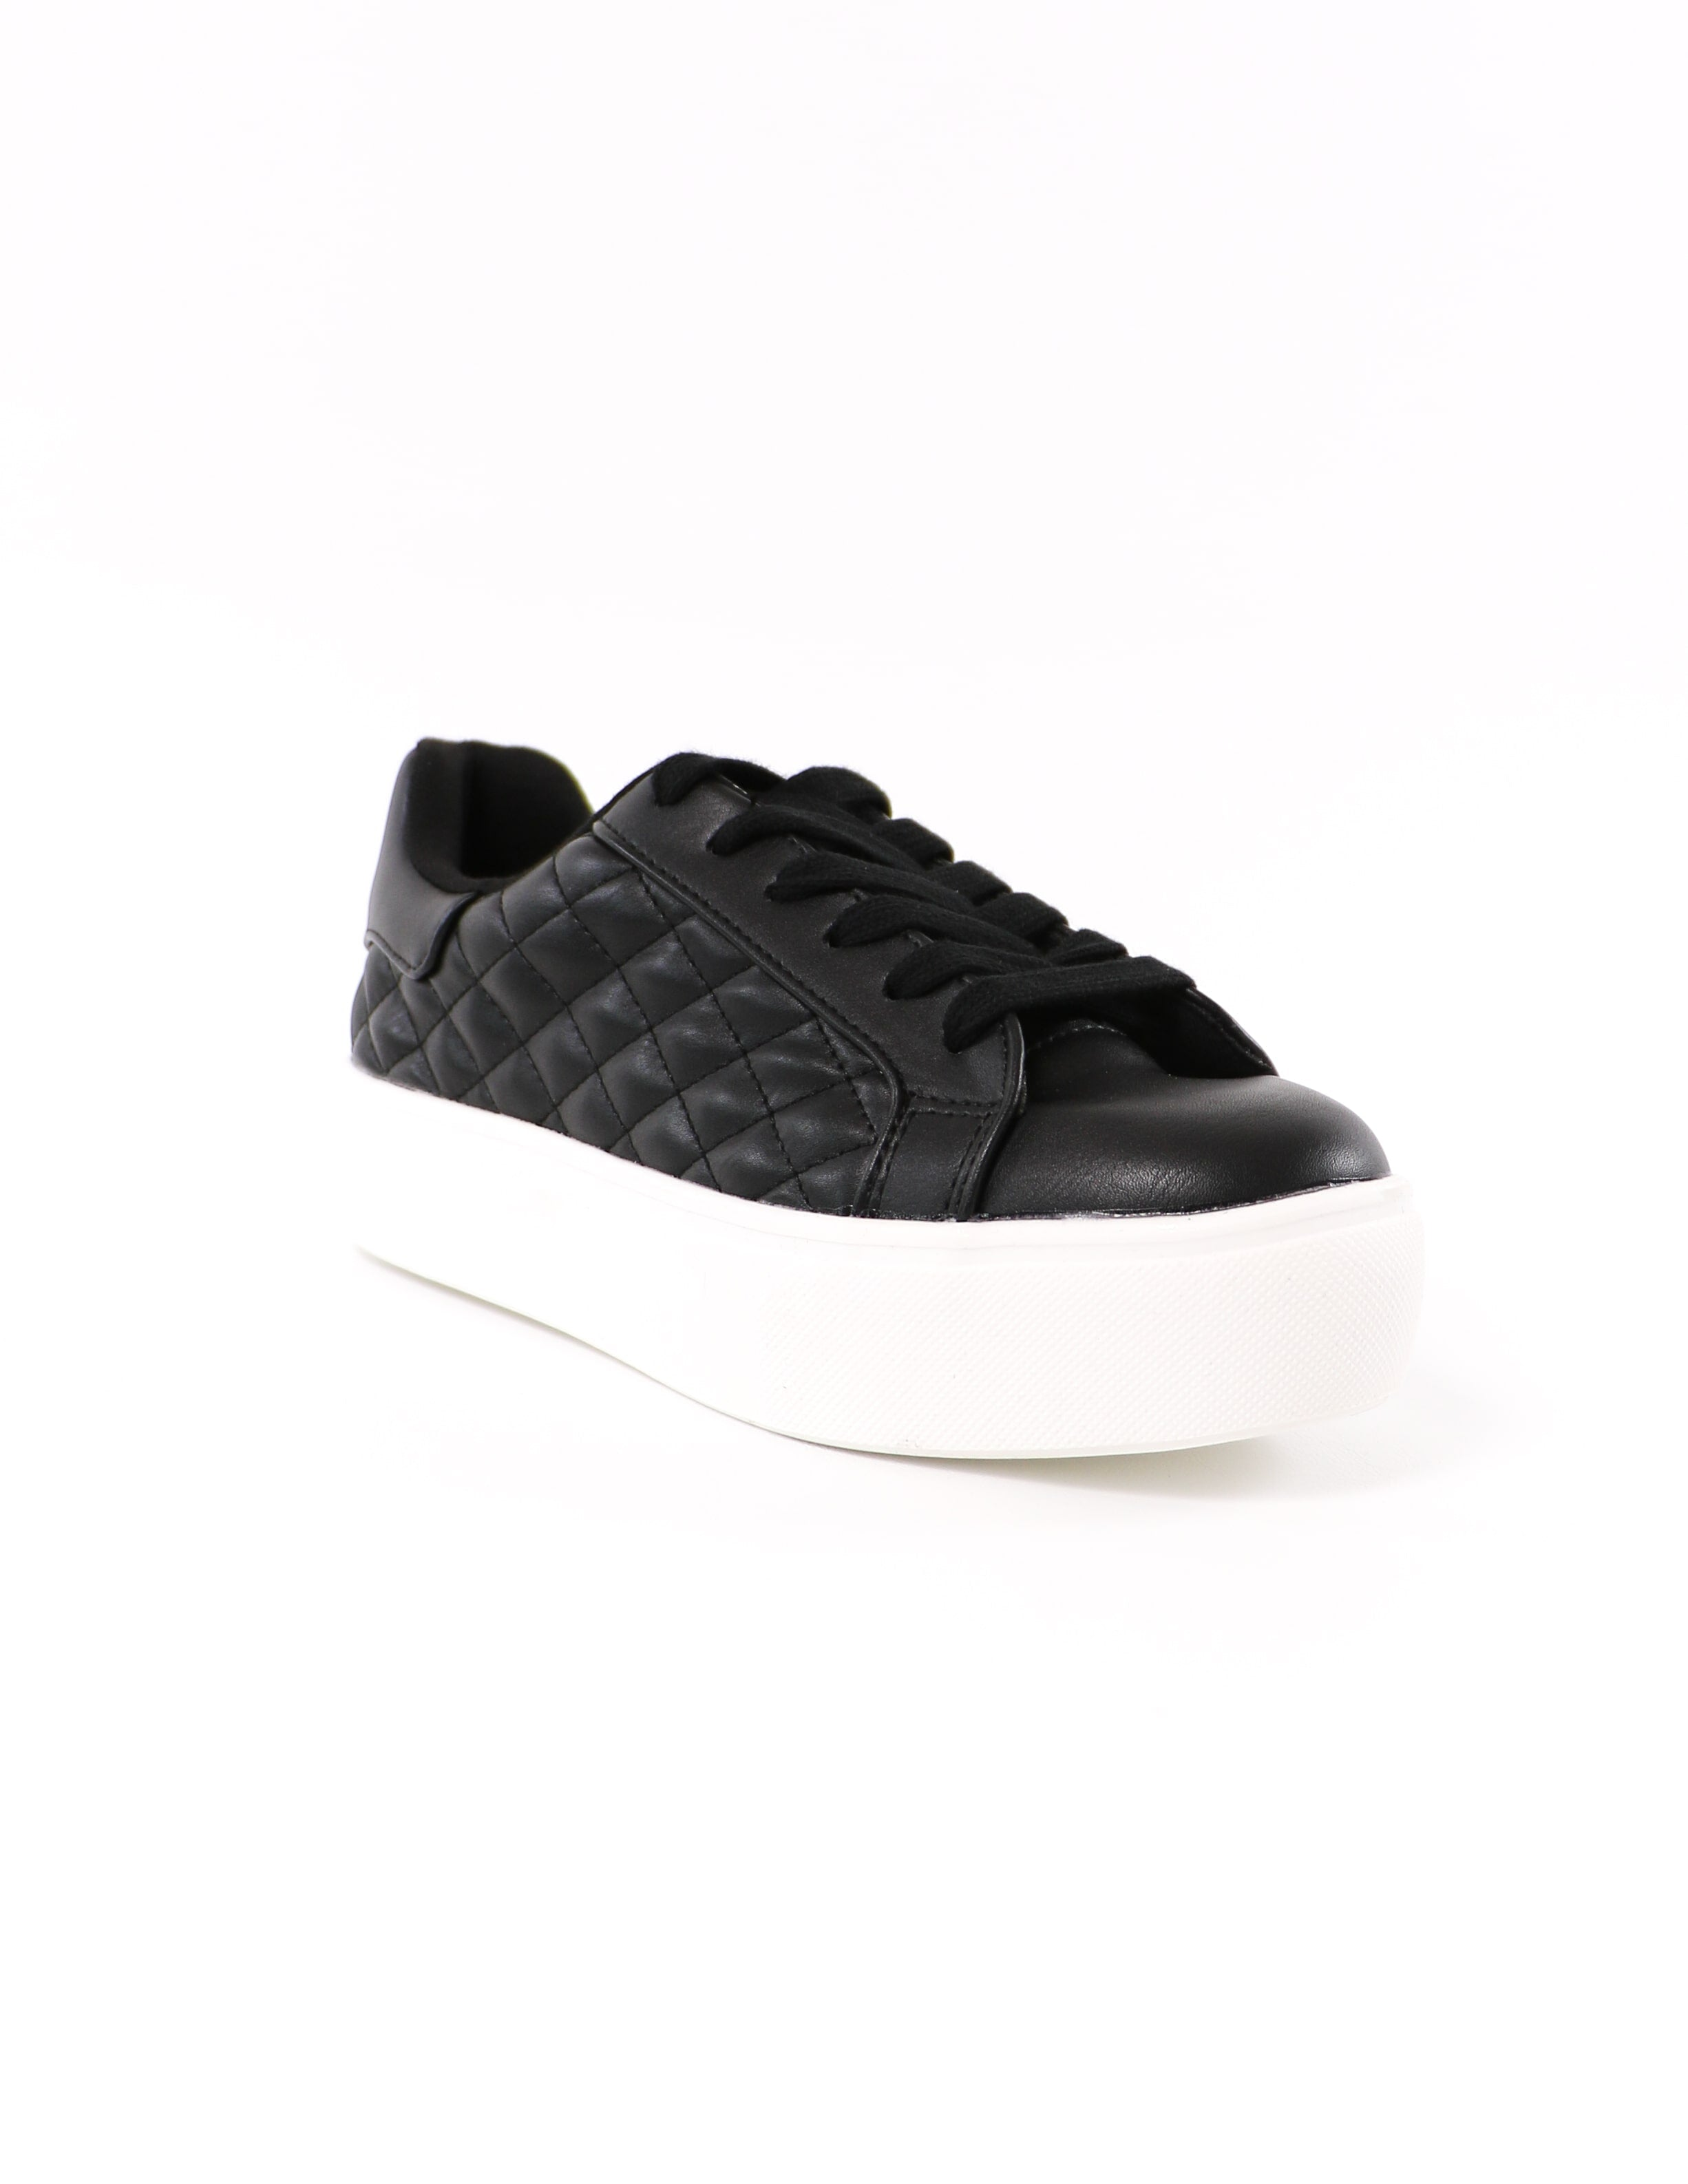 black quilt messin' around sneaker with black laces and white rubber sole - elle bleu shoes